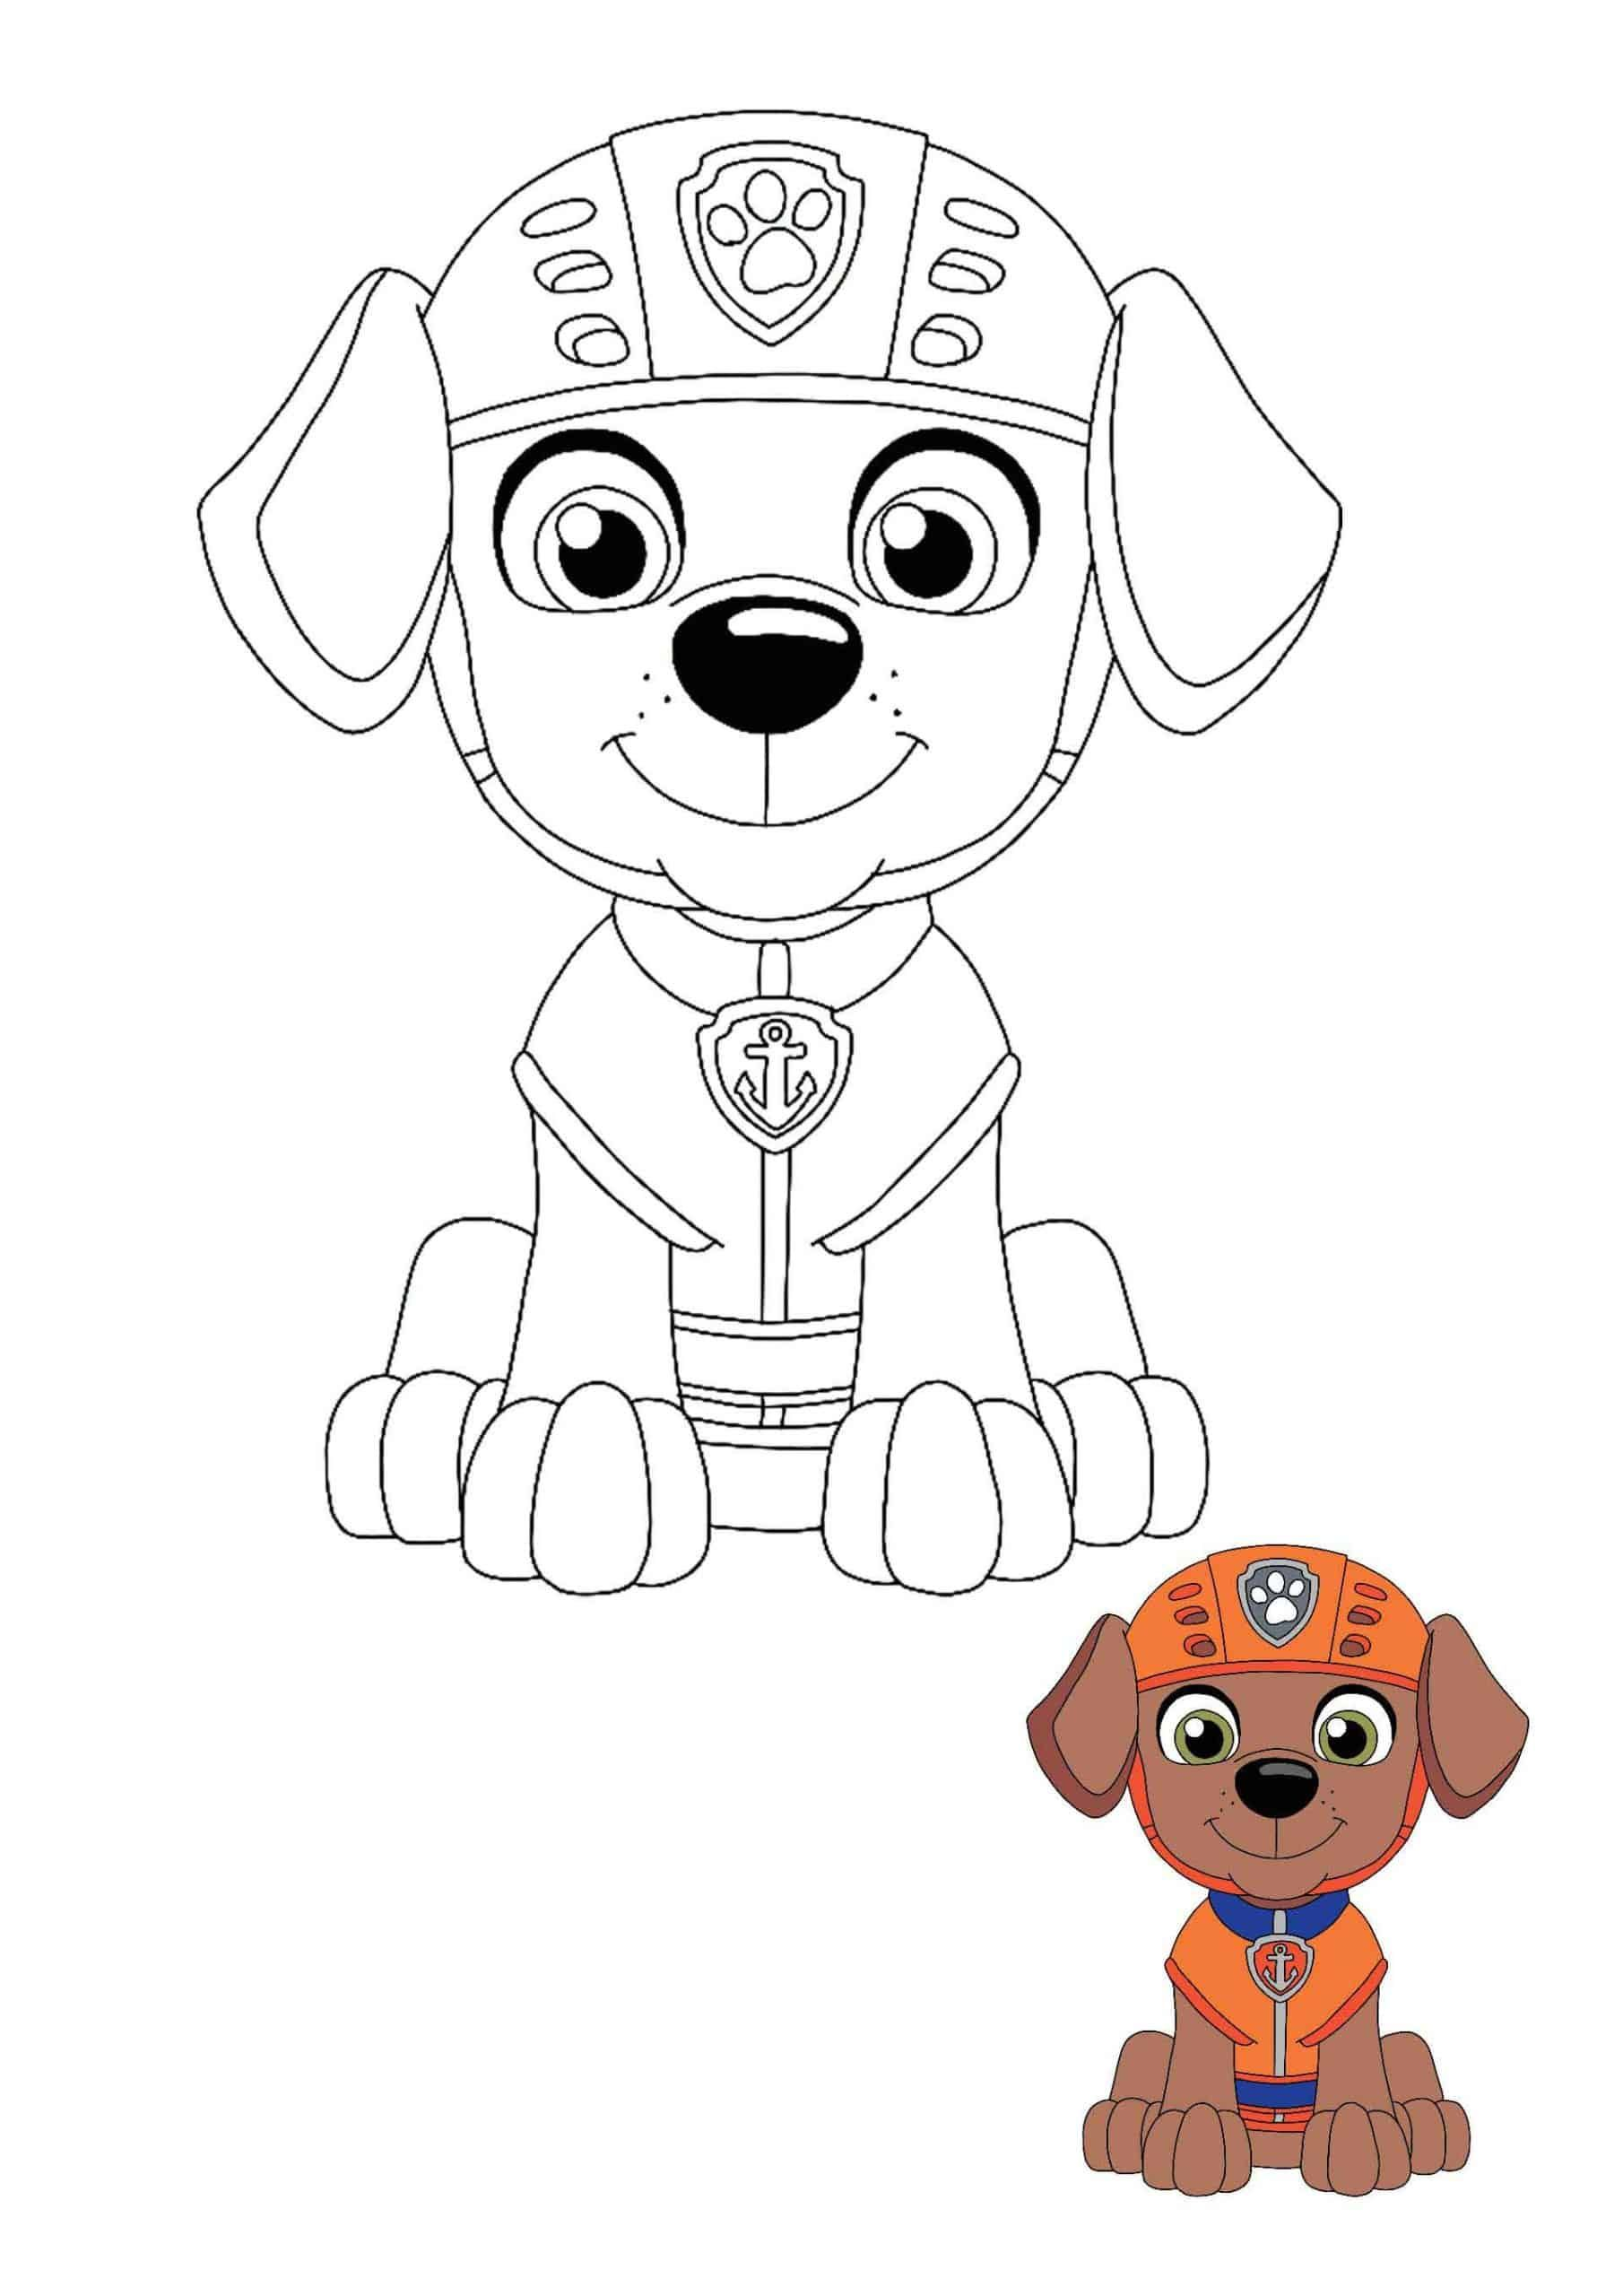 Paw Patrol Zuma Coloring Pages Paw Patrol Coloring Pages Paw Patrol Coloring Zuma Paw Patrol